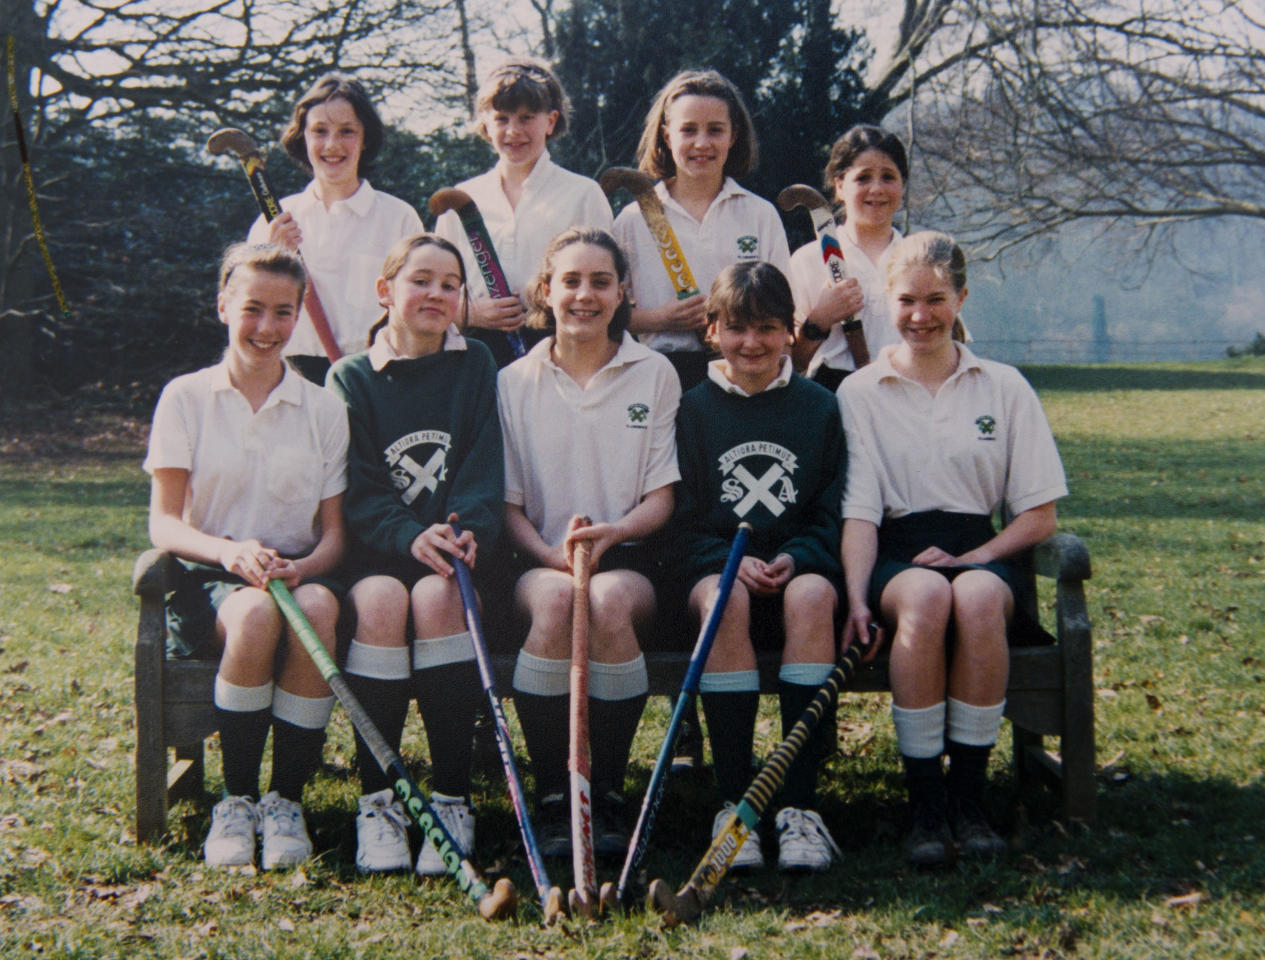 "<div class=""caption-credit""> Photo by: Getty Images</div><div class=""caption-title""></div>Prince George's future mama and Duchess of Cambridge, Kate Middleton, sits front and center as a teen or preteen in this undated hockey team photo from her time at St. Andrew's School. <br>"